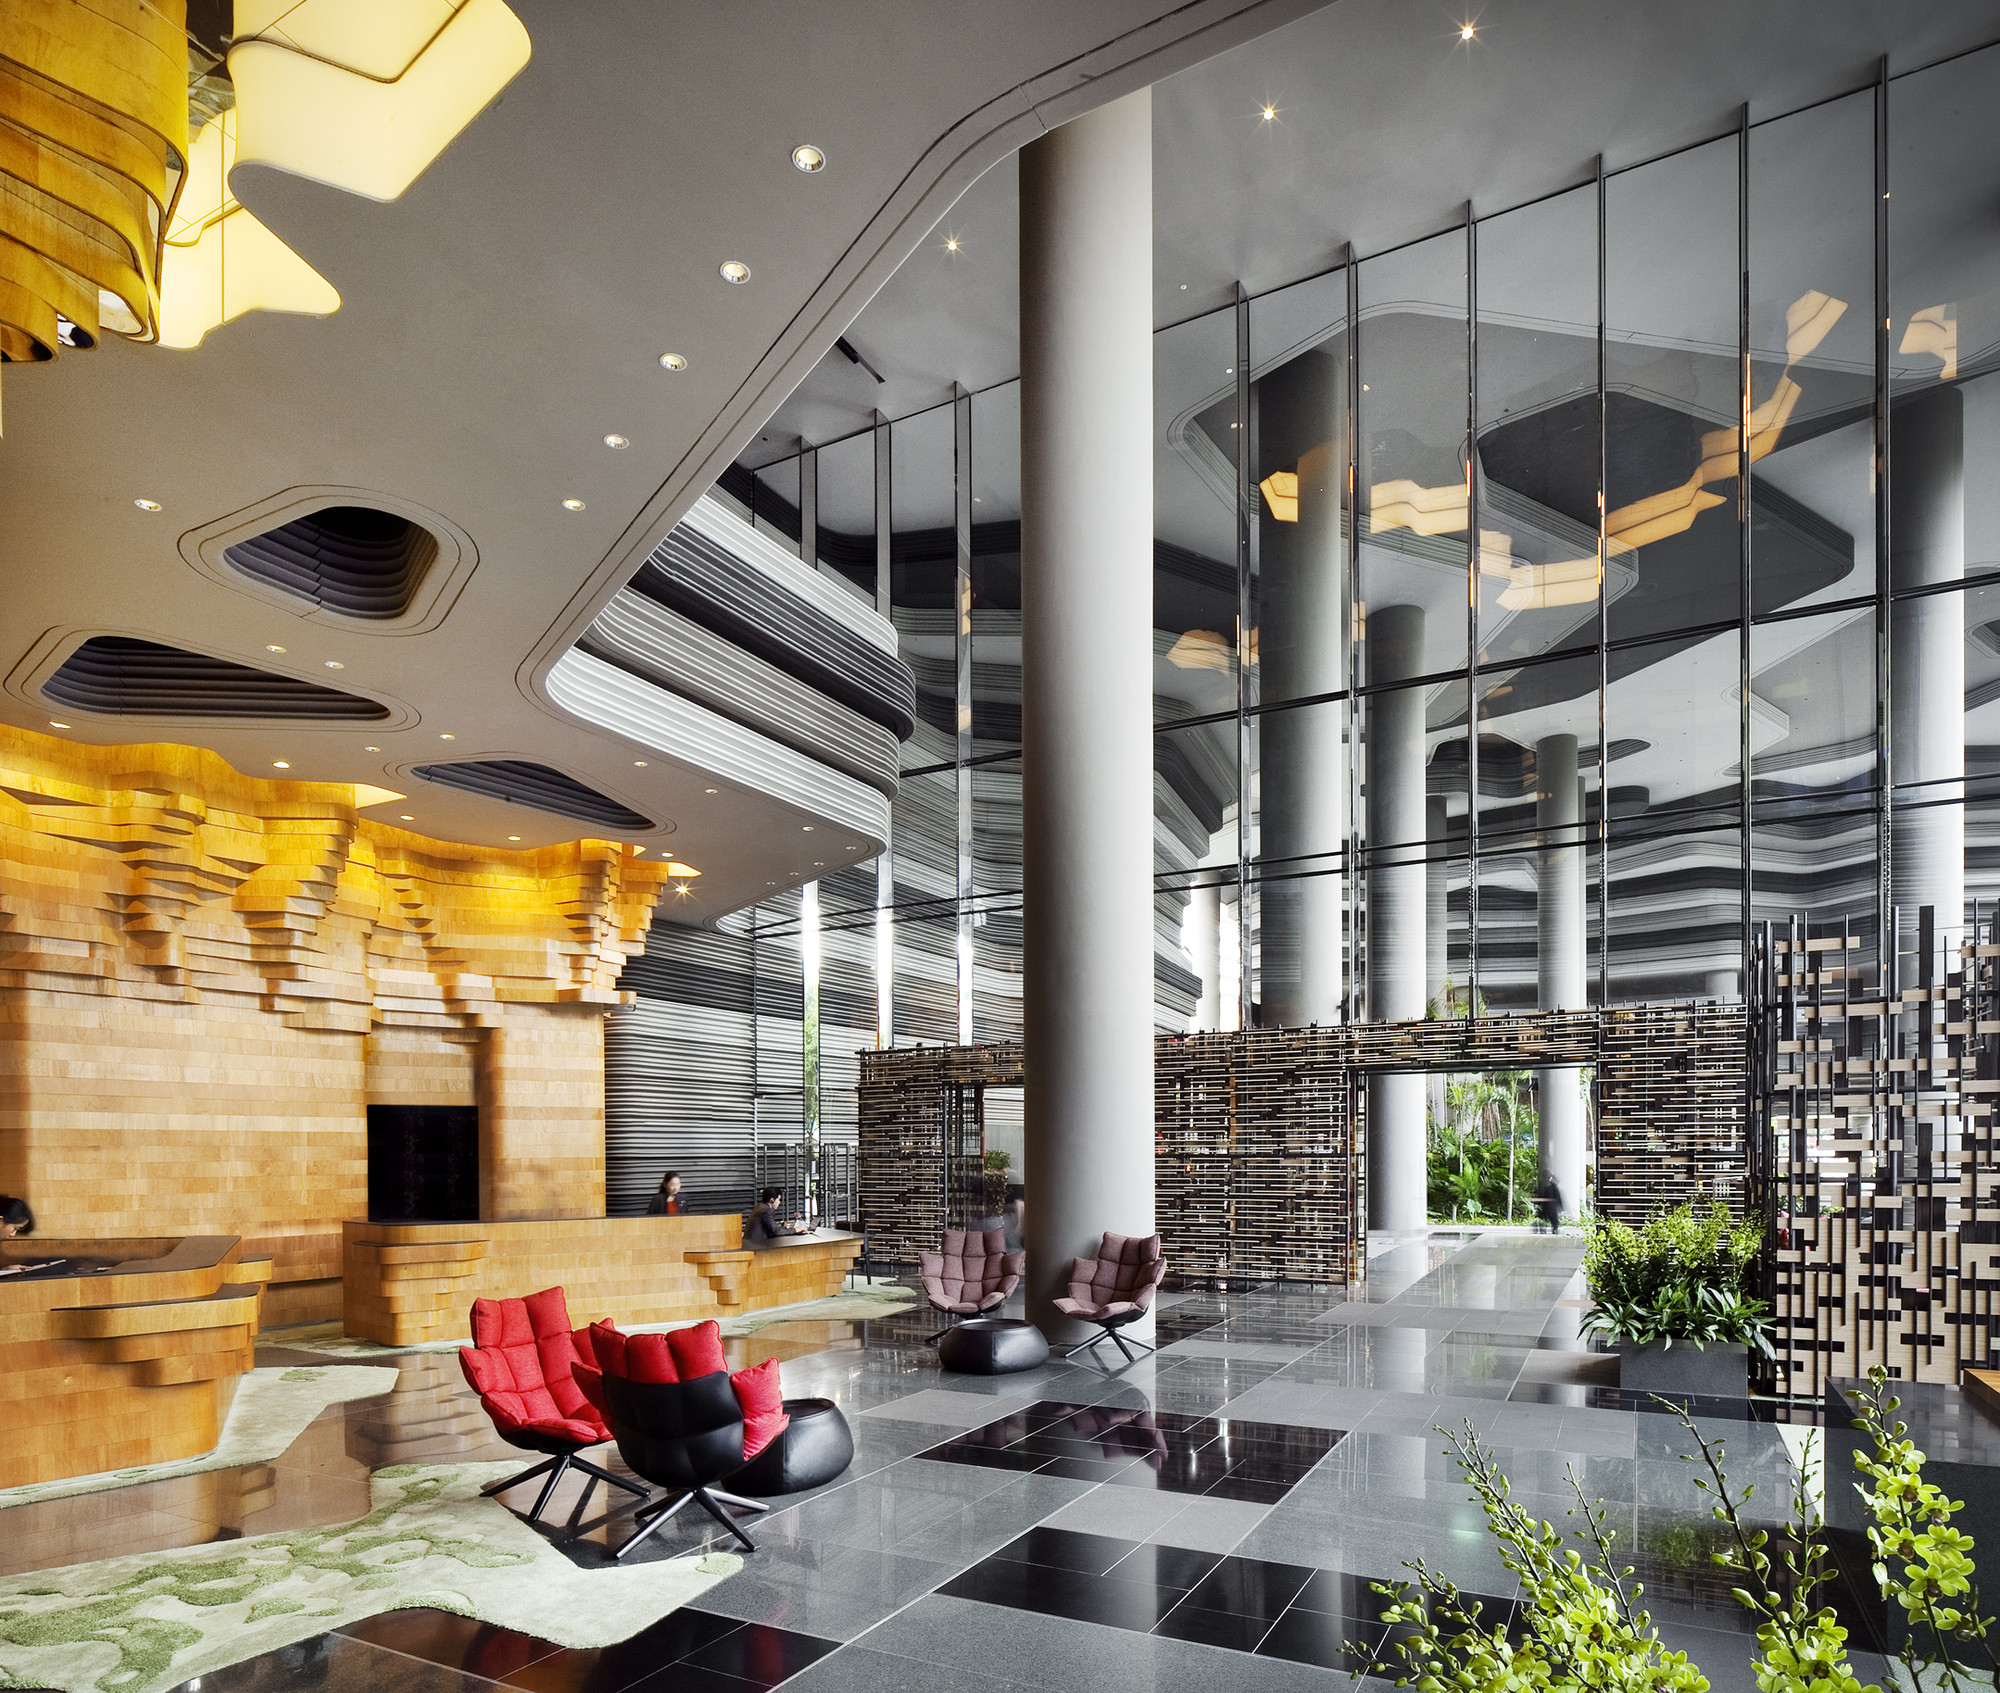 INSIDE Awards Now Open: Submit Your Projects!, PARKROYAL on Pickering by WOHA. Inside Festival Winner 2013 in the Hotel Category. Image © Patrick Bingham-Hall